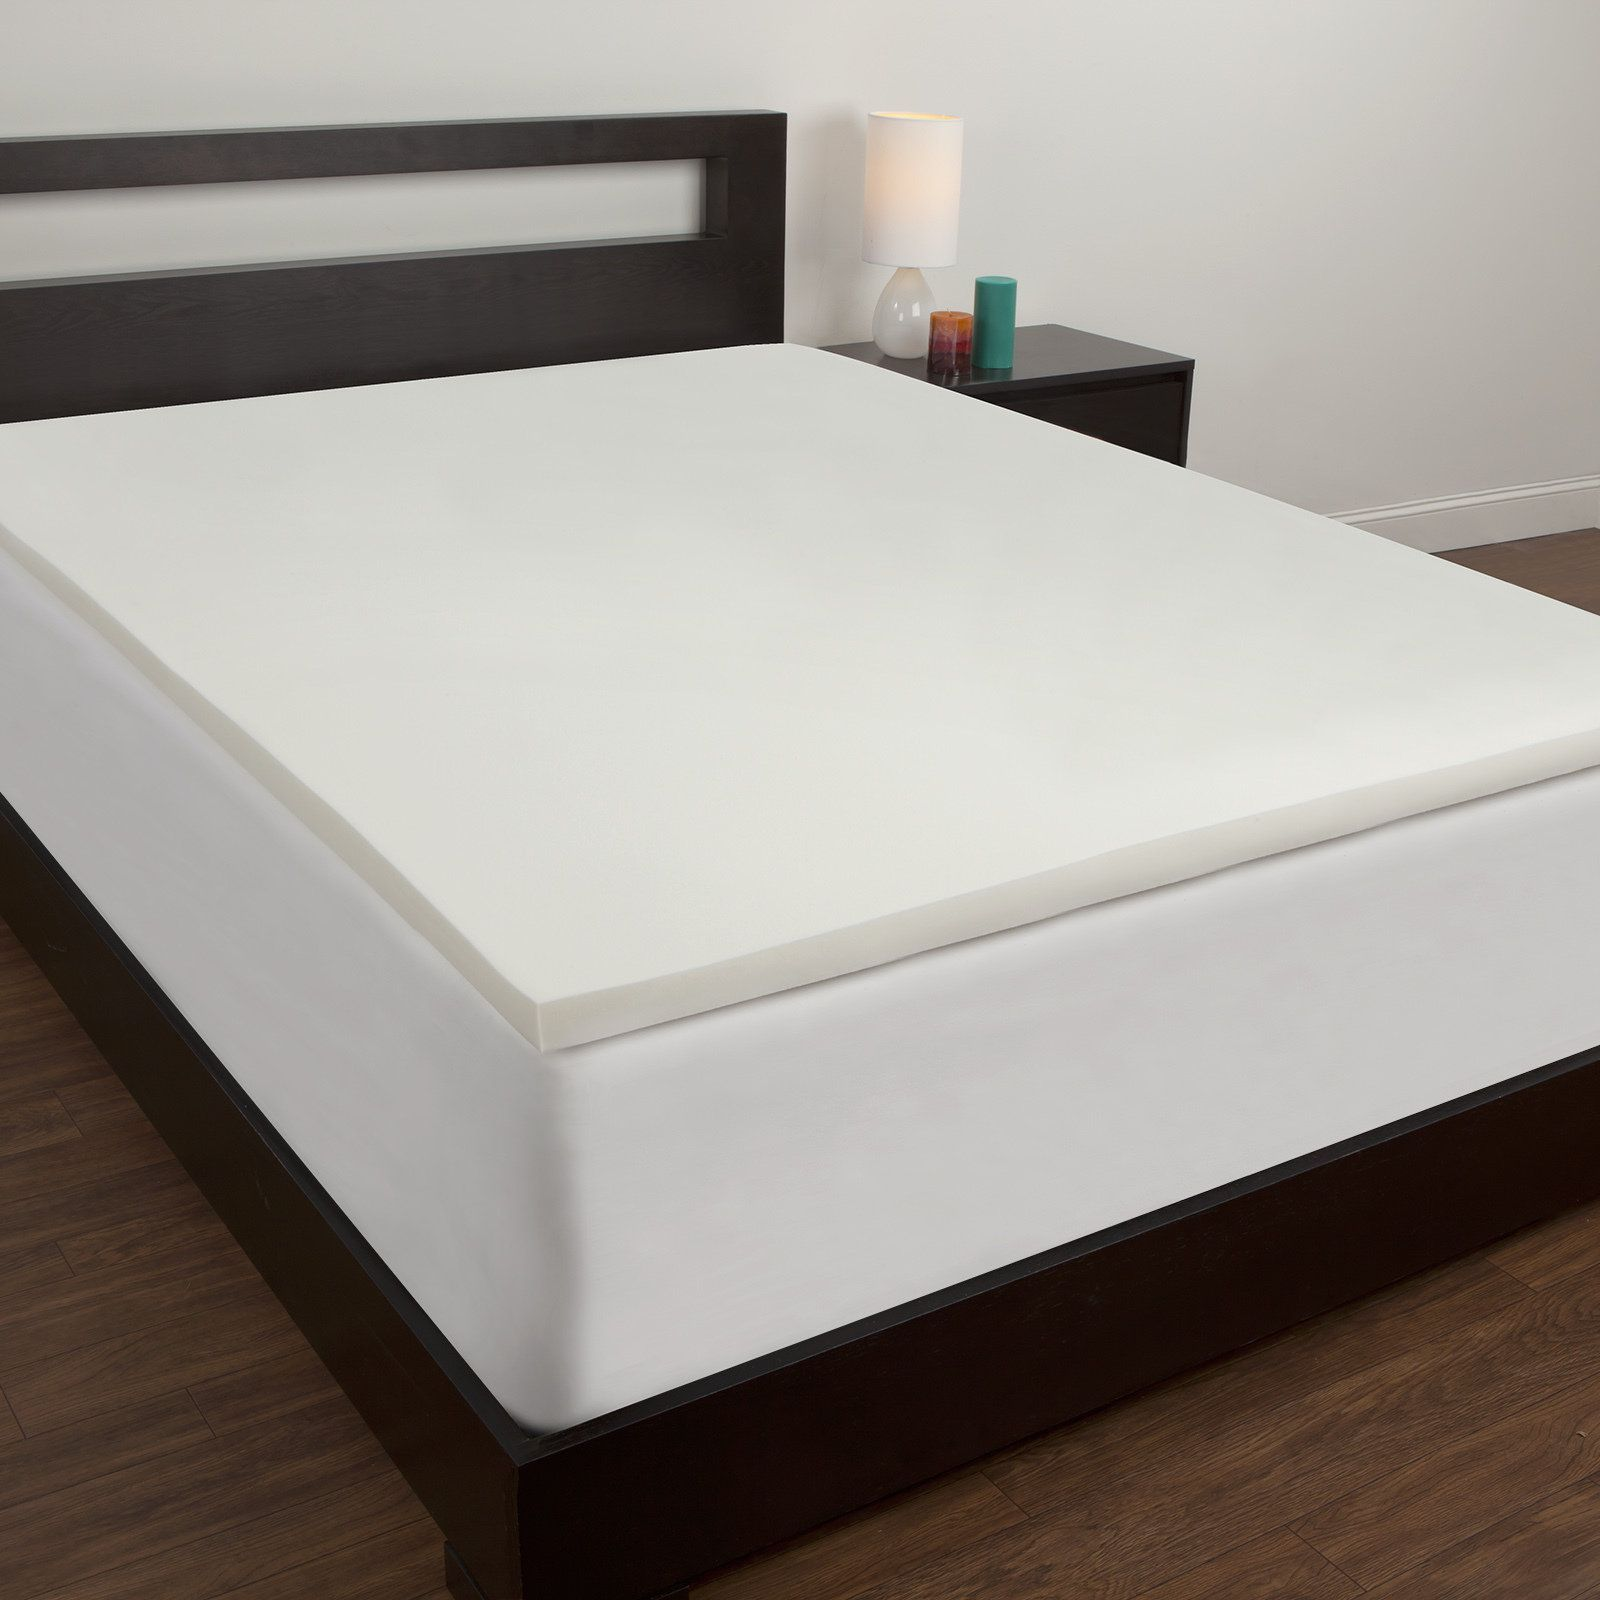 composed more toppers mattress overstock foam furniture of is pin comfortable shopping this dream memory clothing toppergel topper jewelry online gel electronics bedding com form